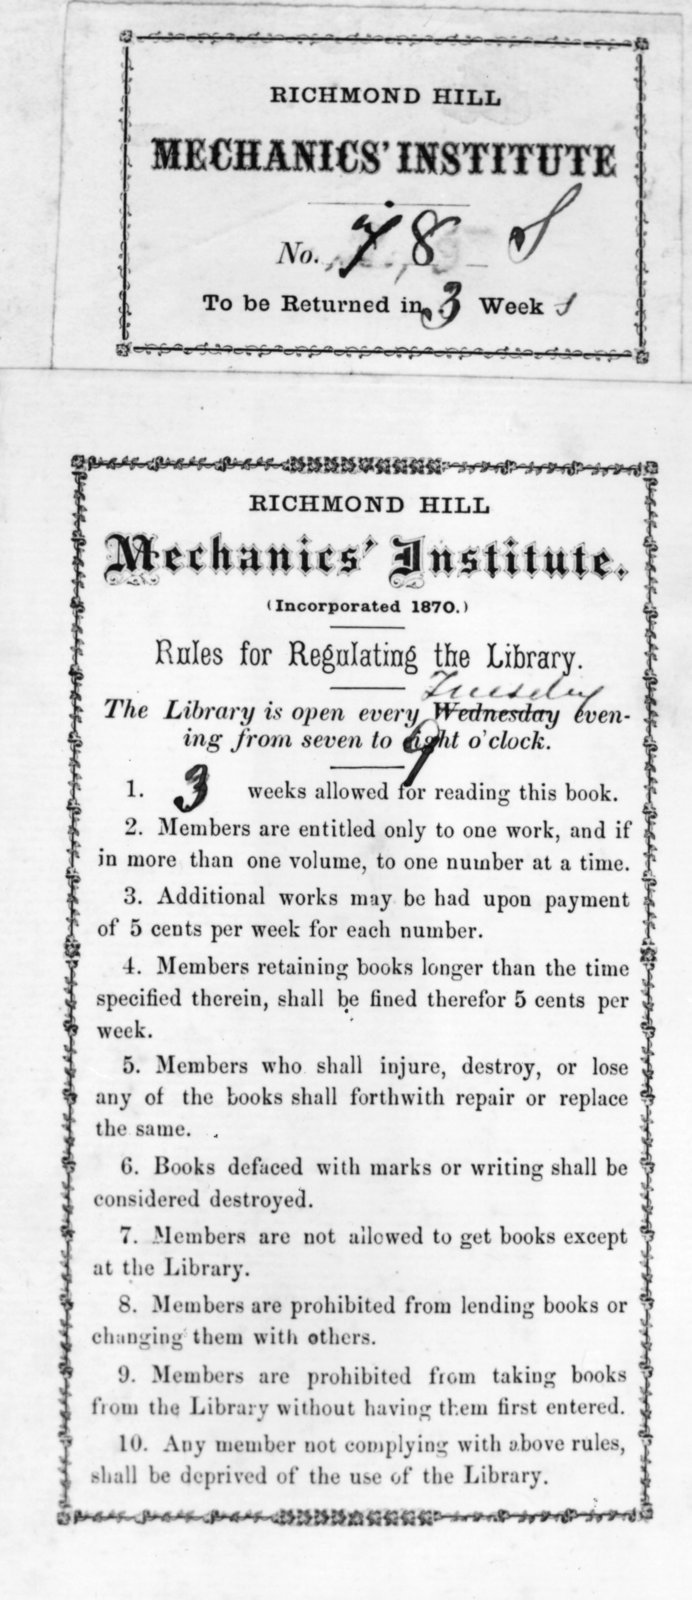 Book borrowing receipt with rules for regulating the library